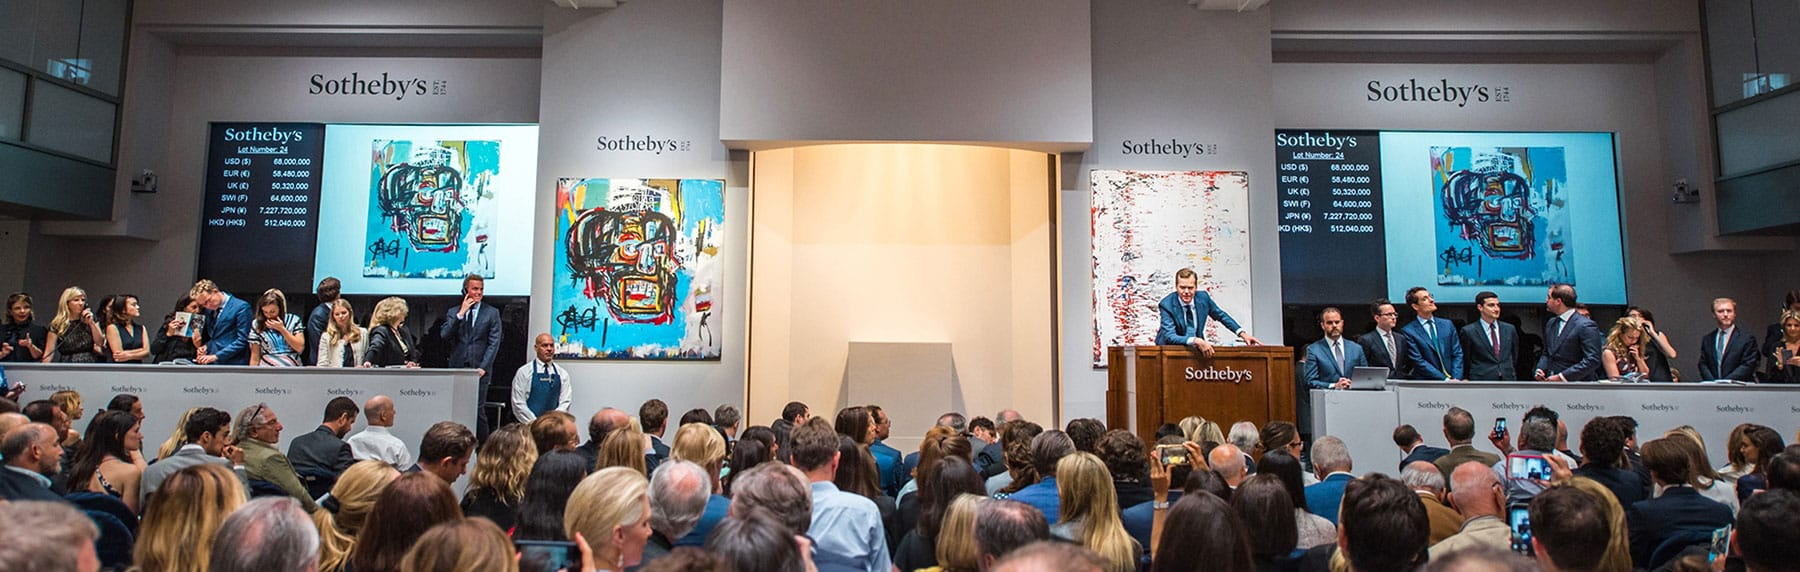 The salesroom at Sotheby's during the auction of an untitled Jean-Michel Basquiat work